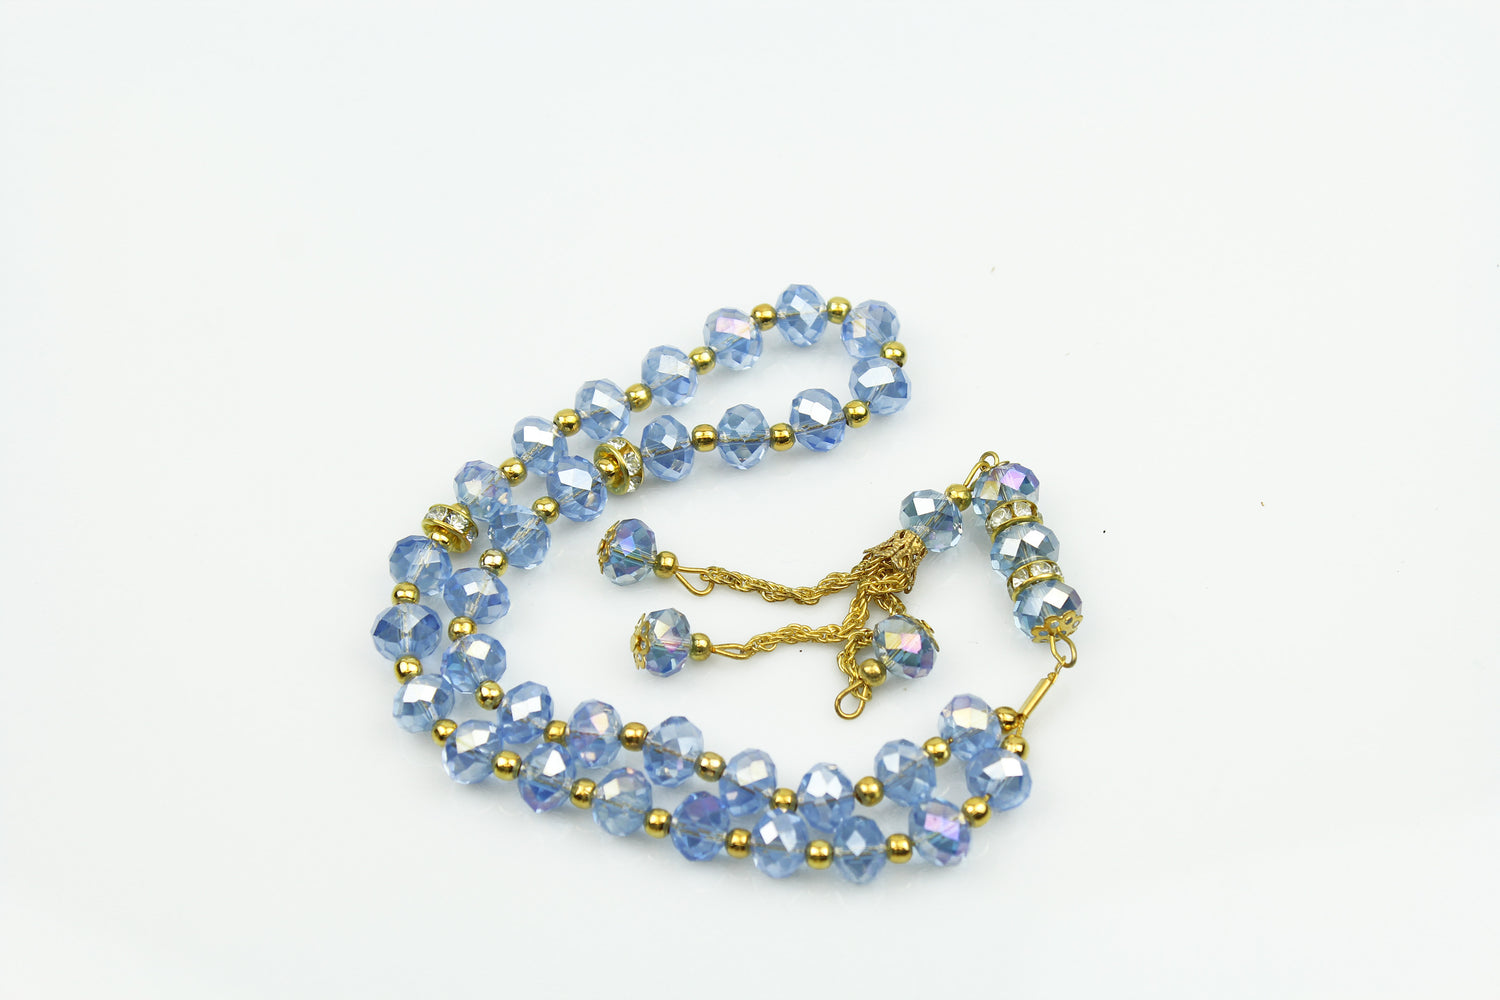 Tasbeeh with gold chain (33 beads) - Light Blue